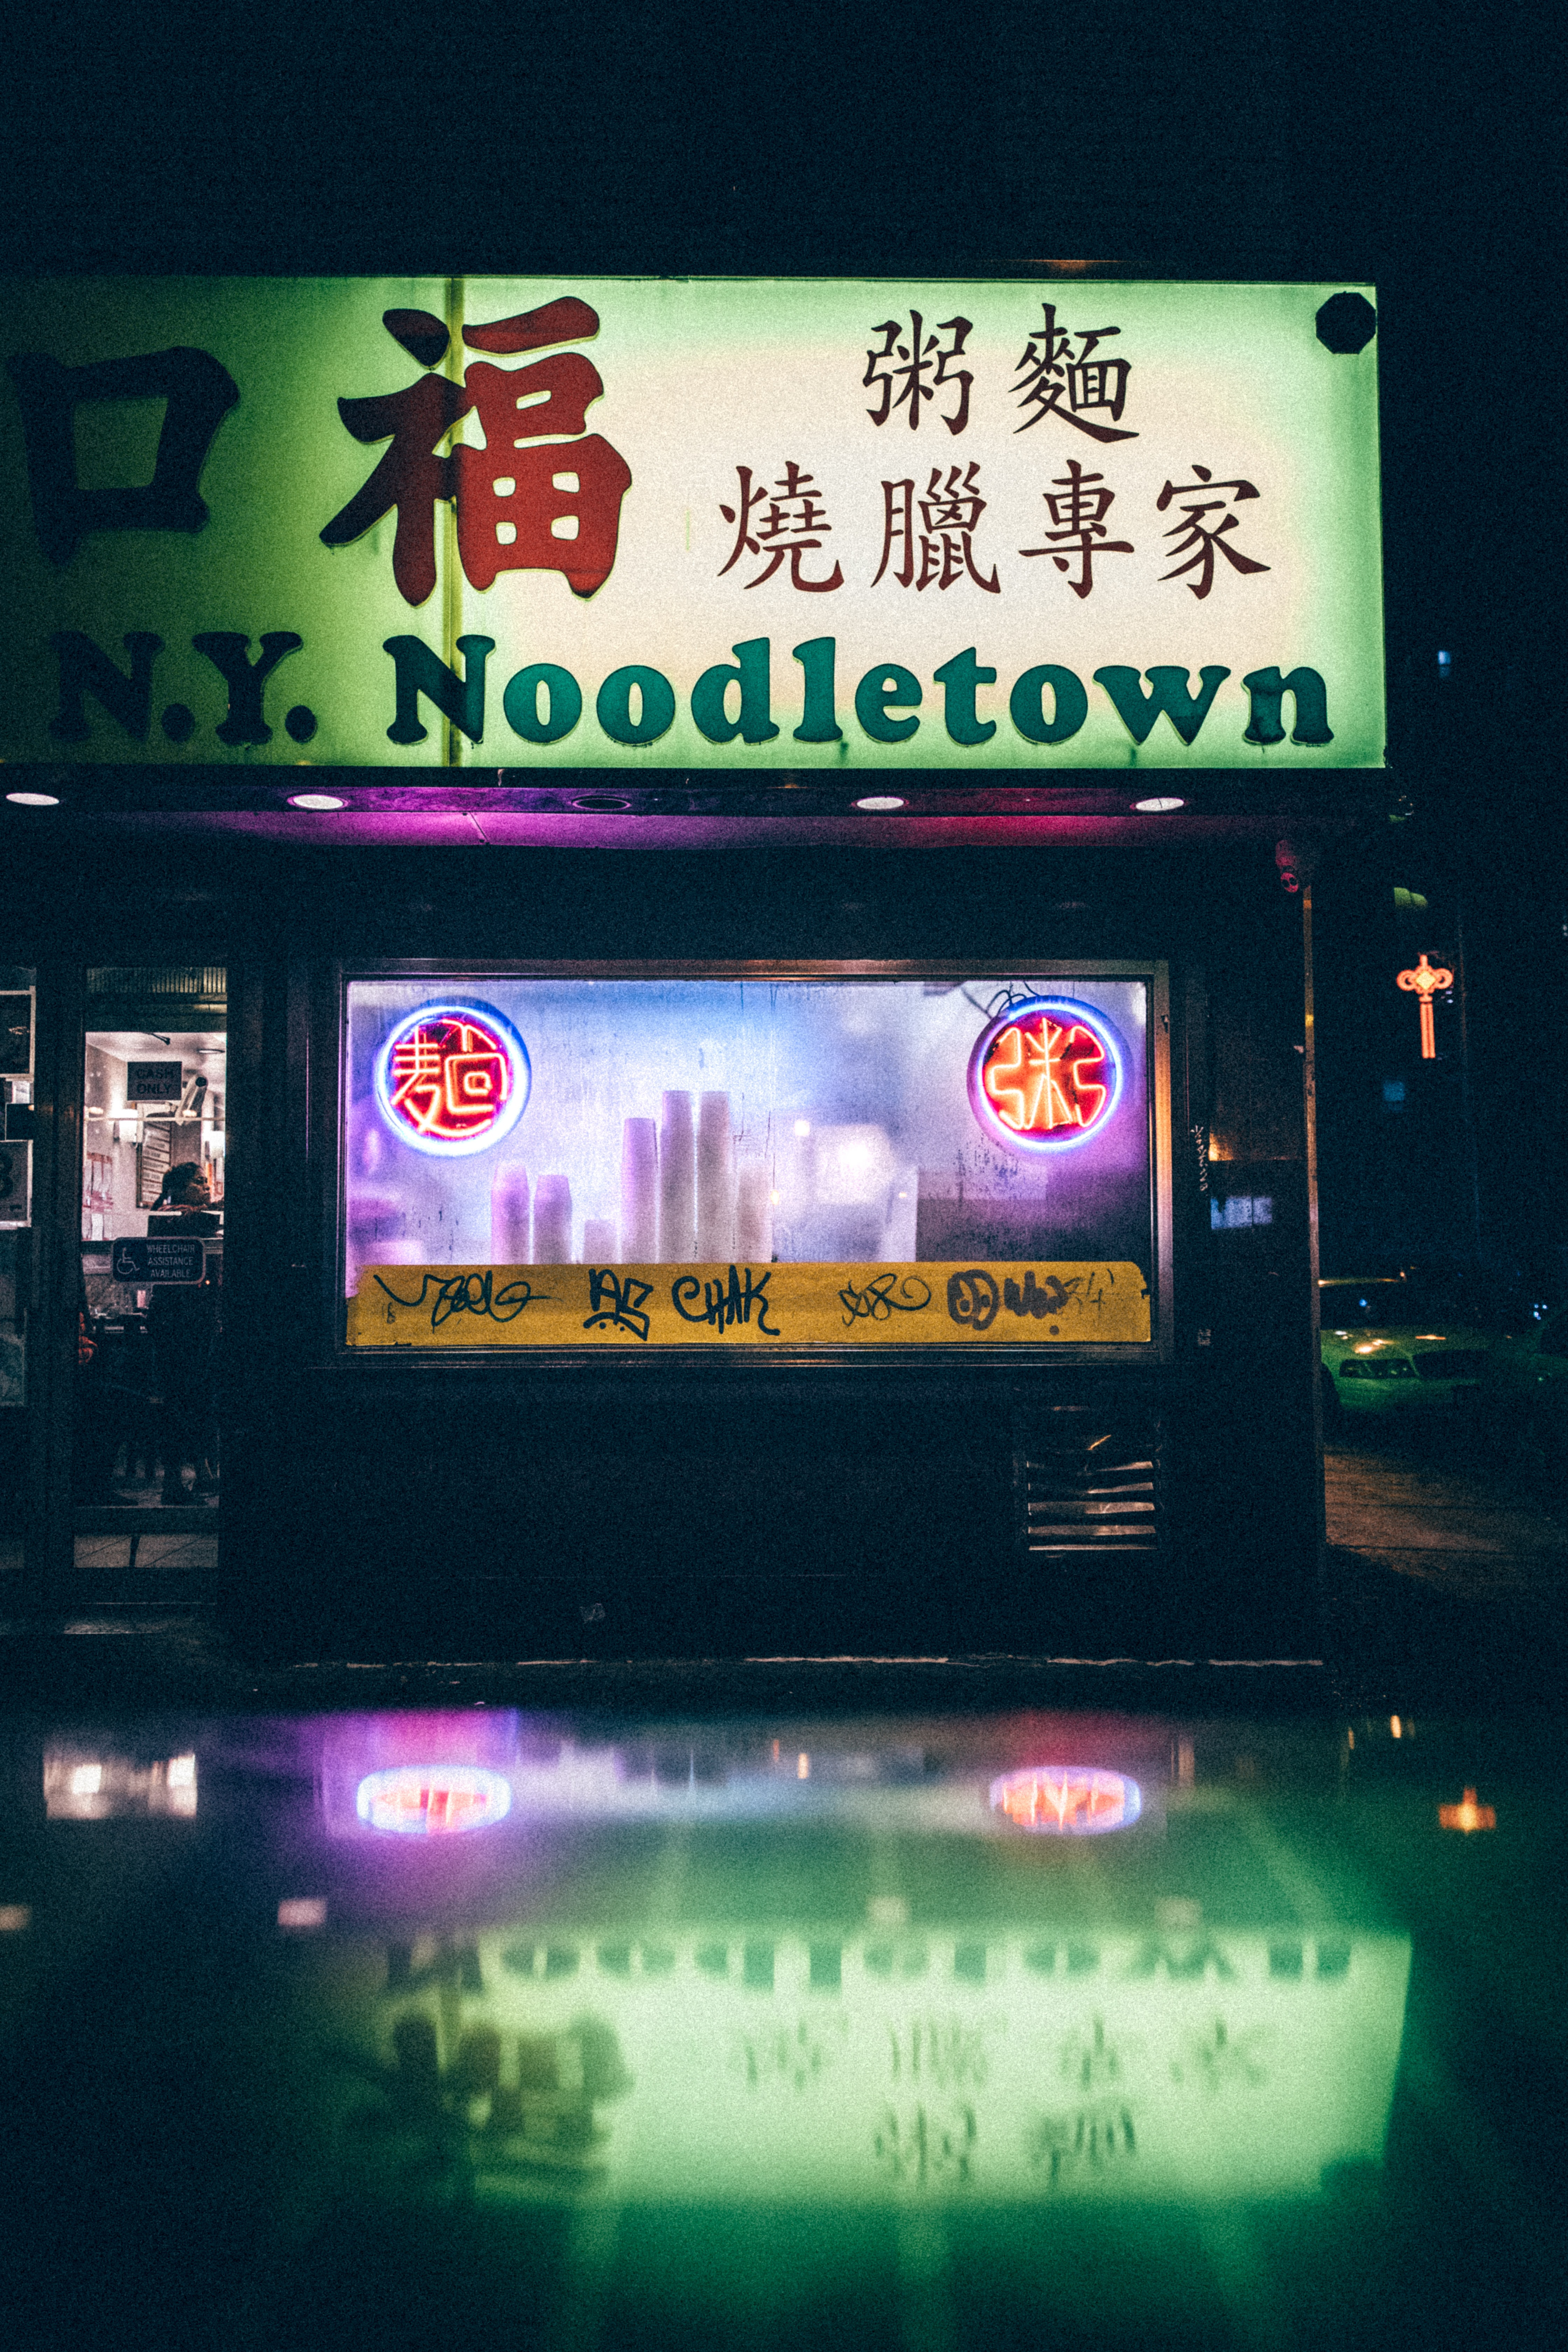 NY Noodletown building with signage at night time